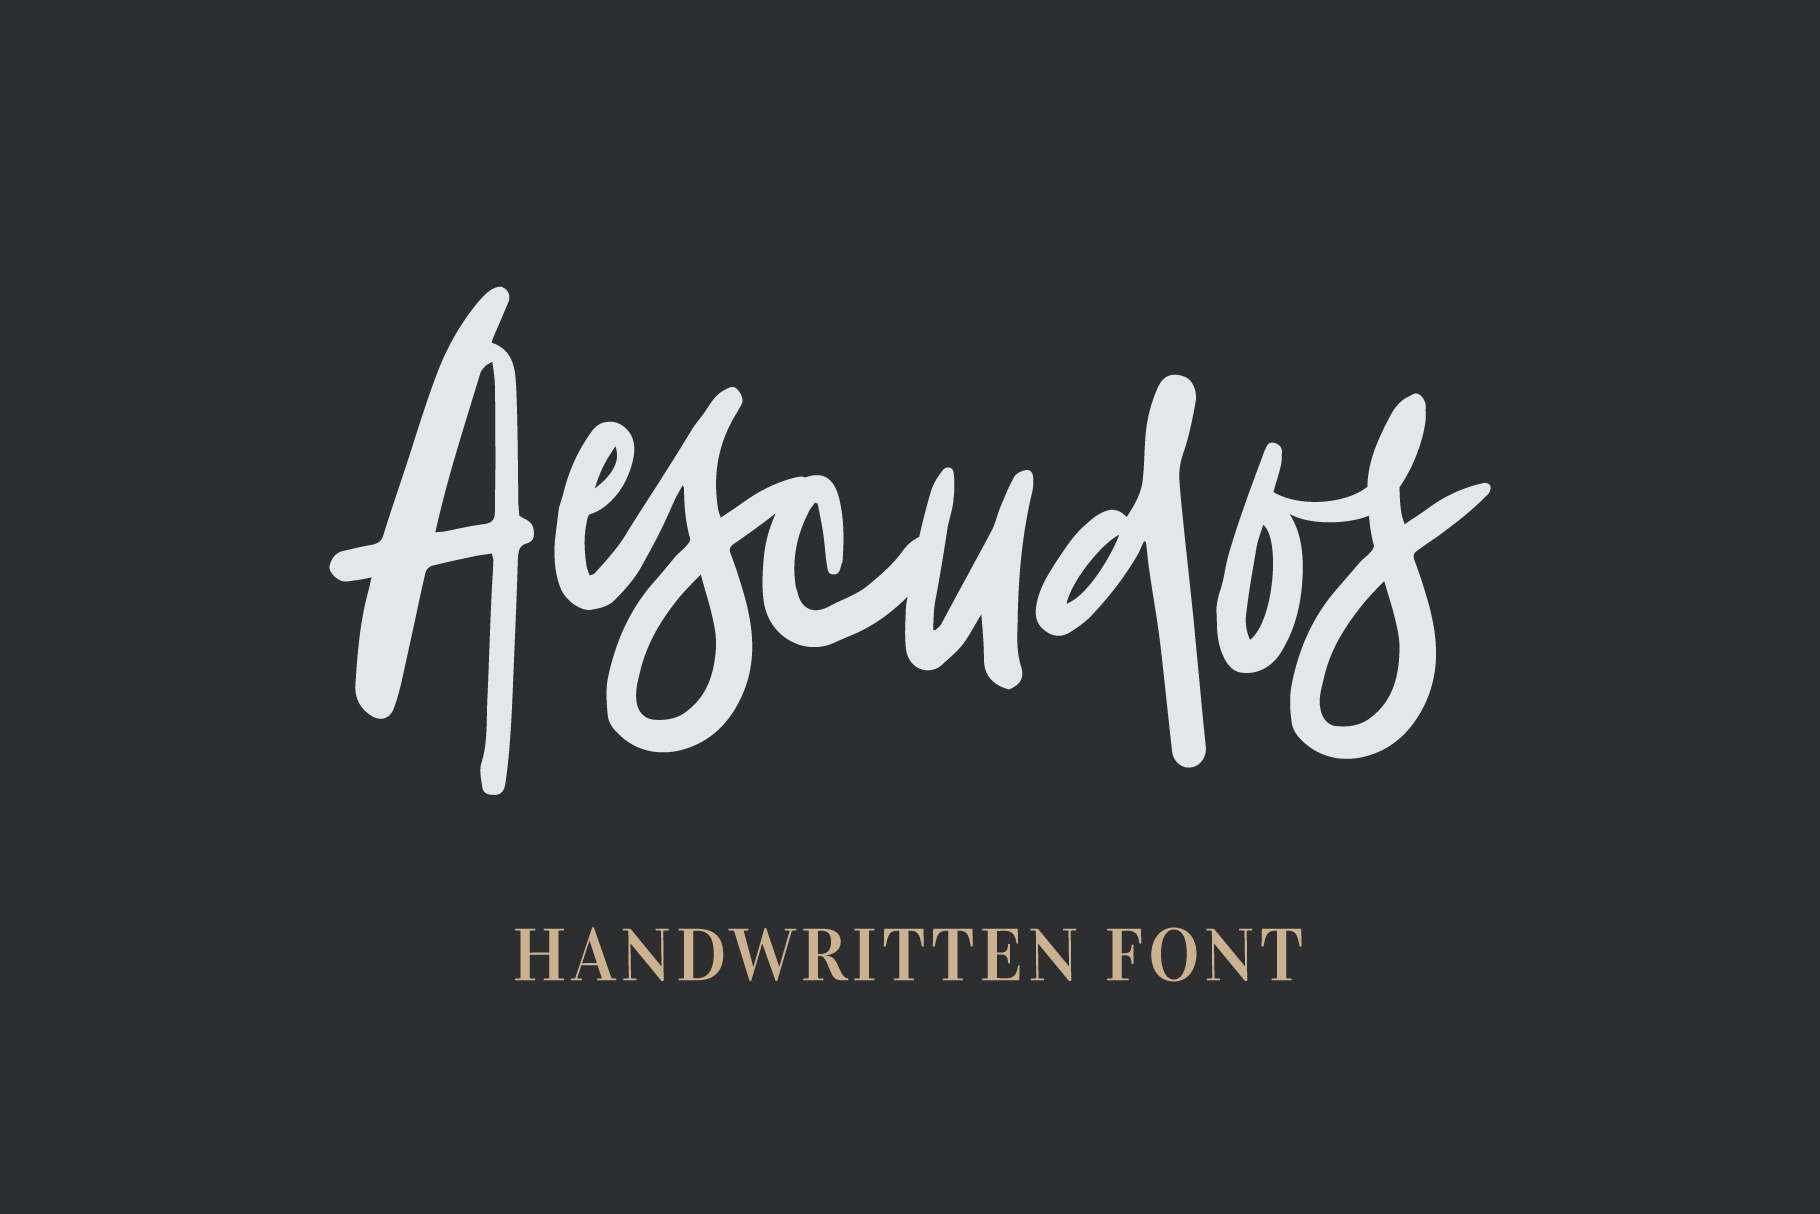 Aescudos - Handwritten Font example image 1